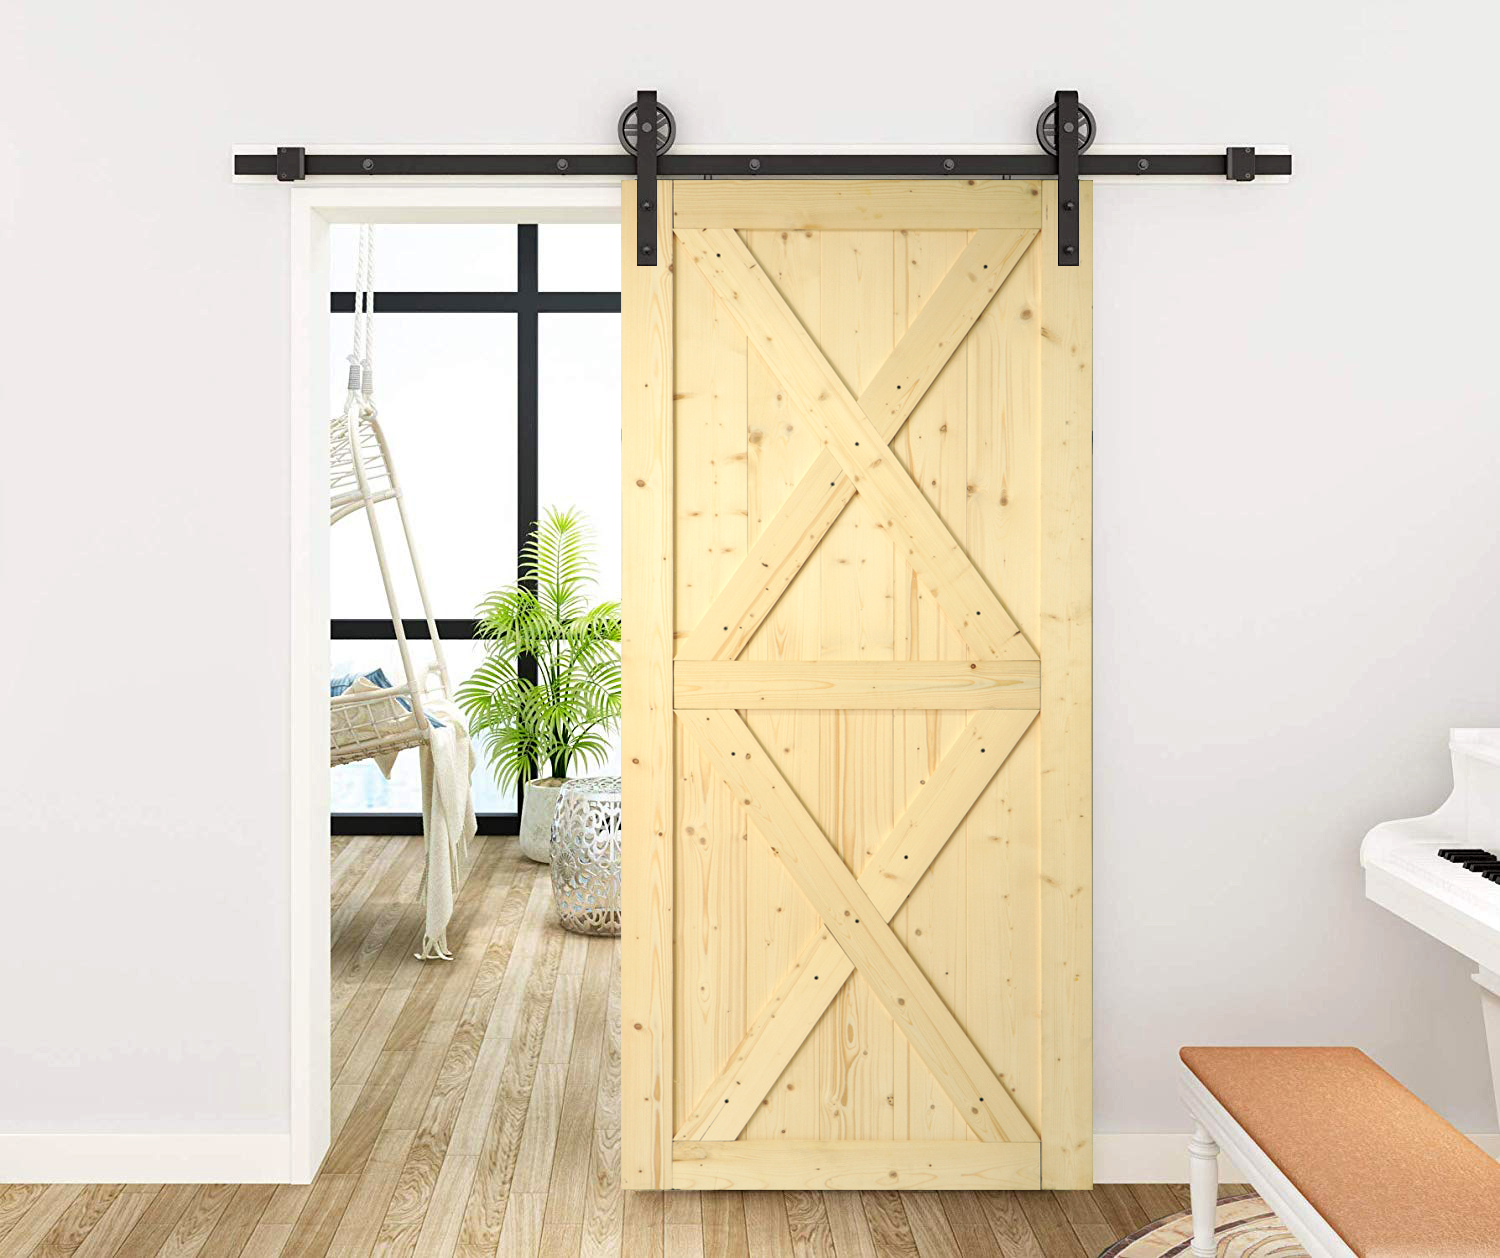 KINMADE 1-3/8in x 37in x 84in knocked down DIY Wood Barn Door Unfinished Solid knotty Pine Pre-Drilled Ready to Assemble